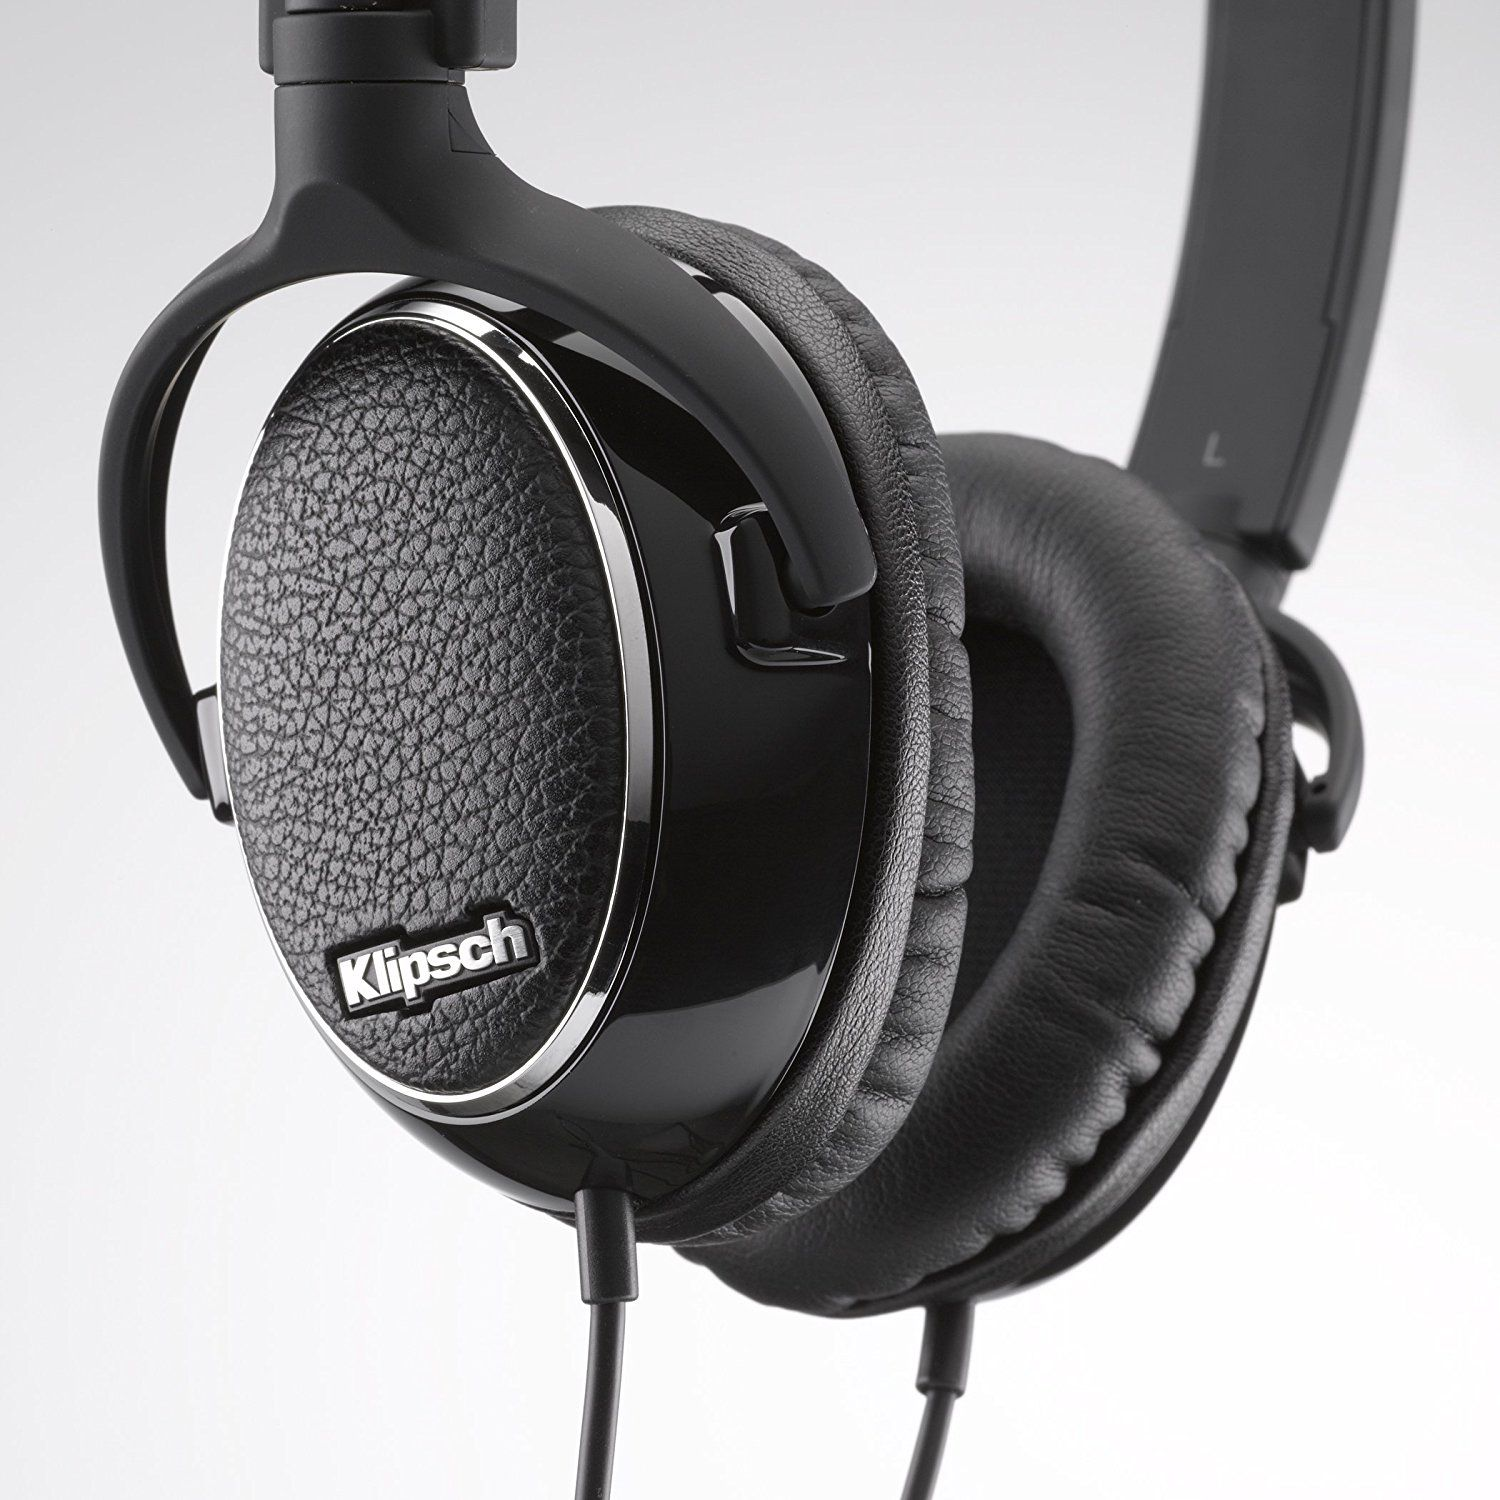 Headphones with Black Color